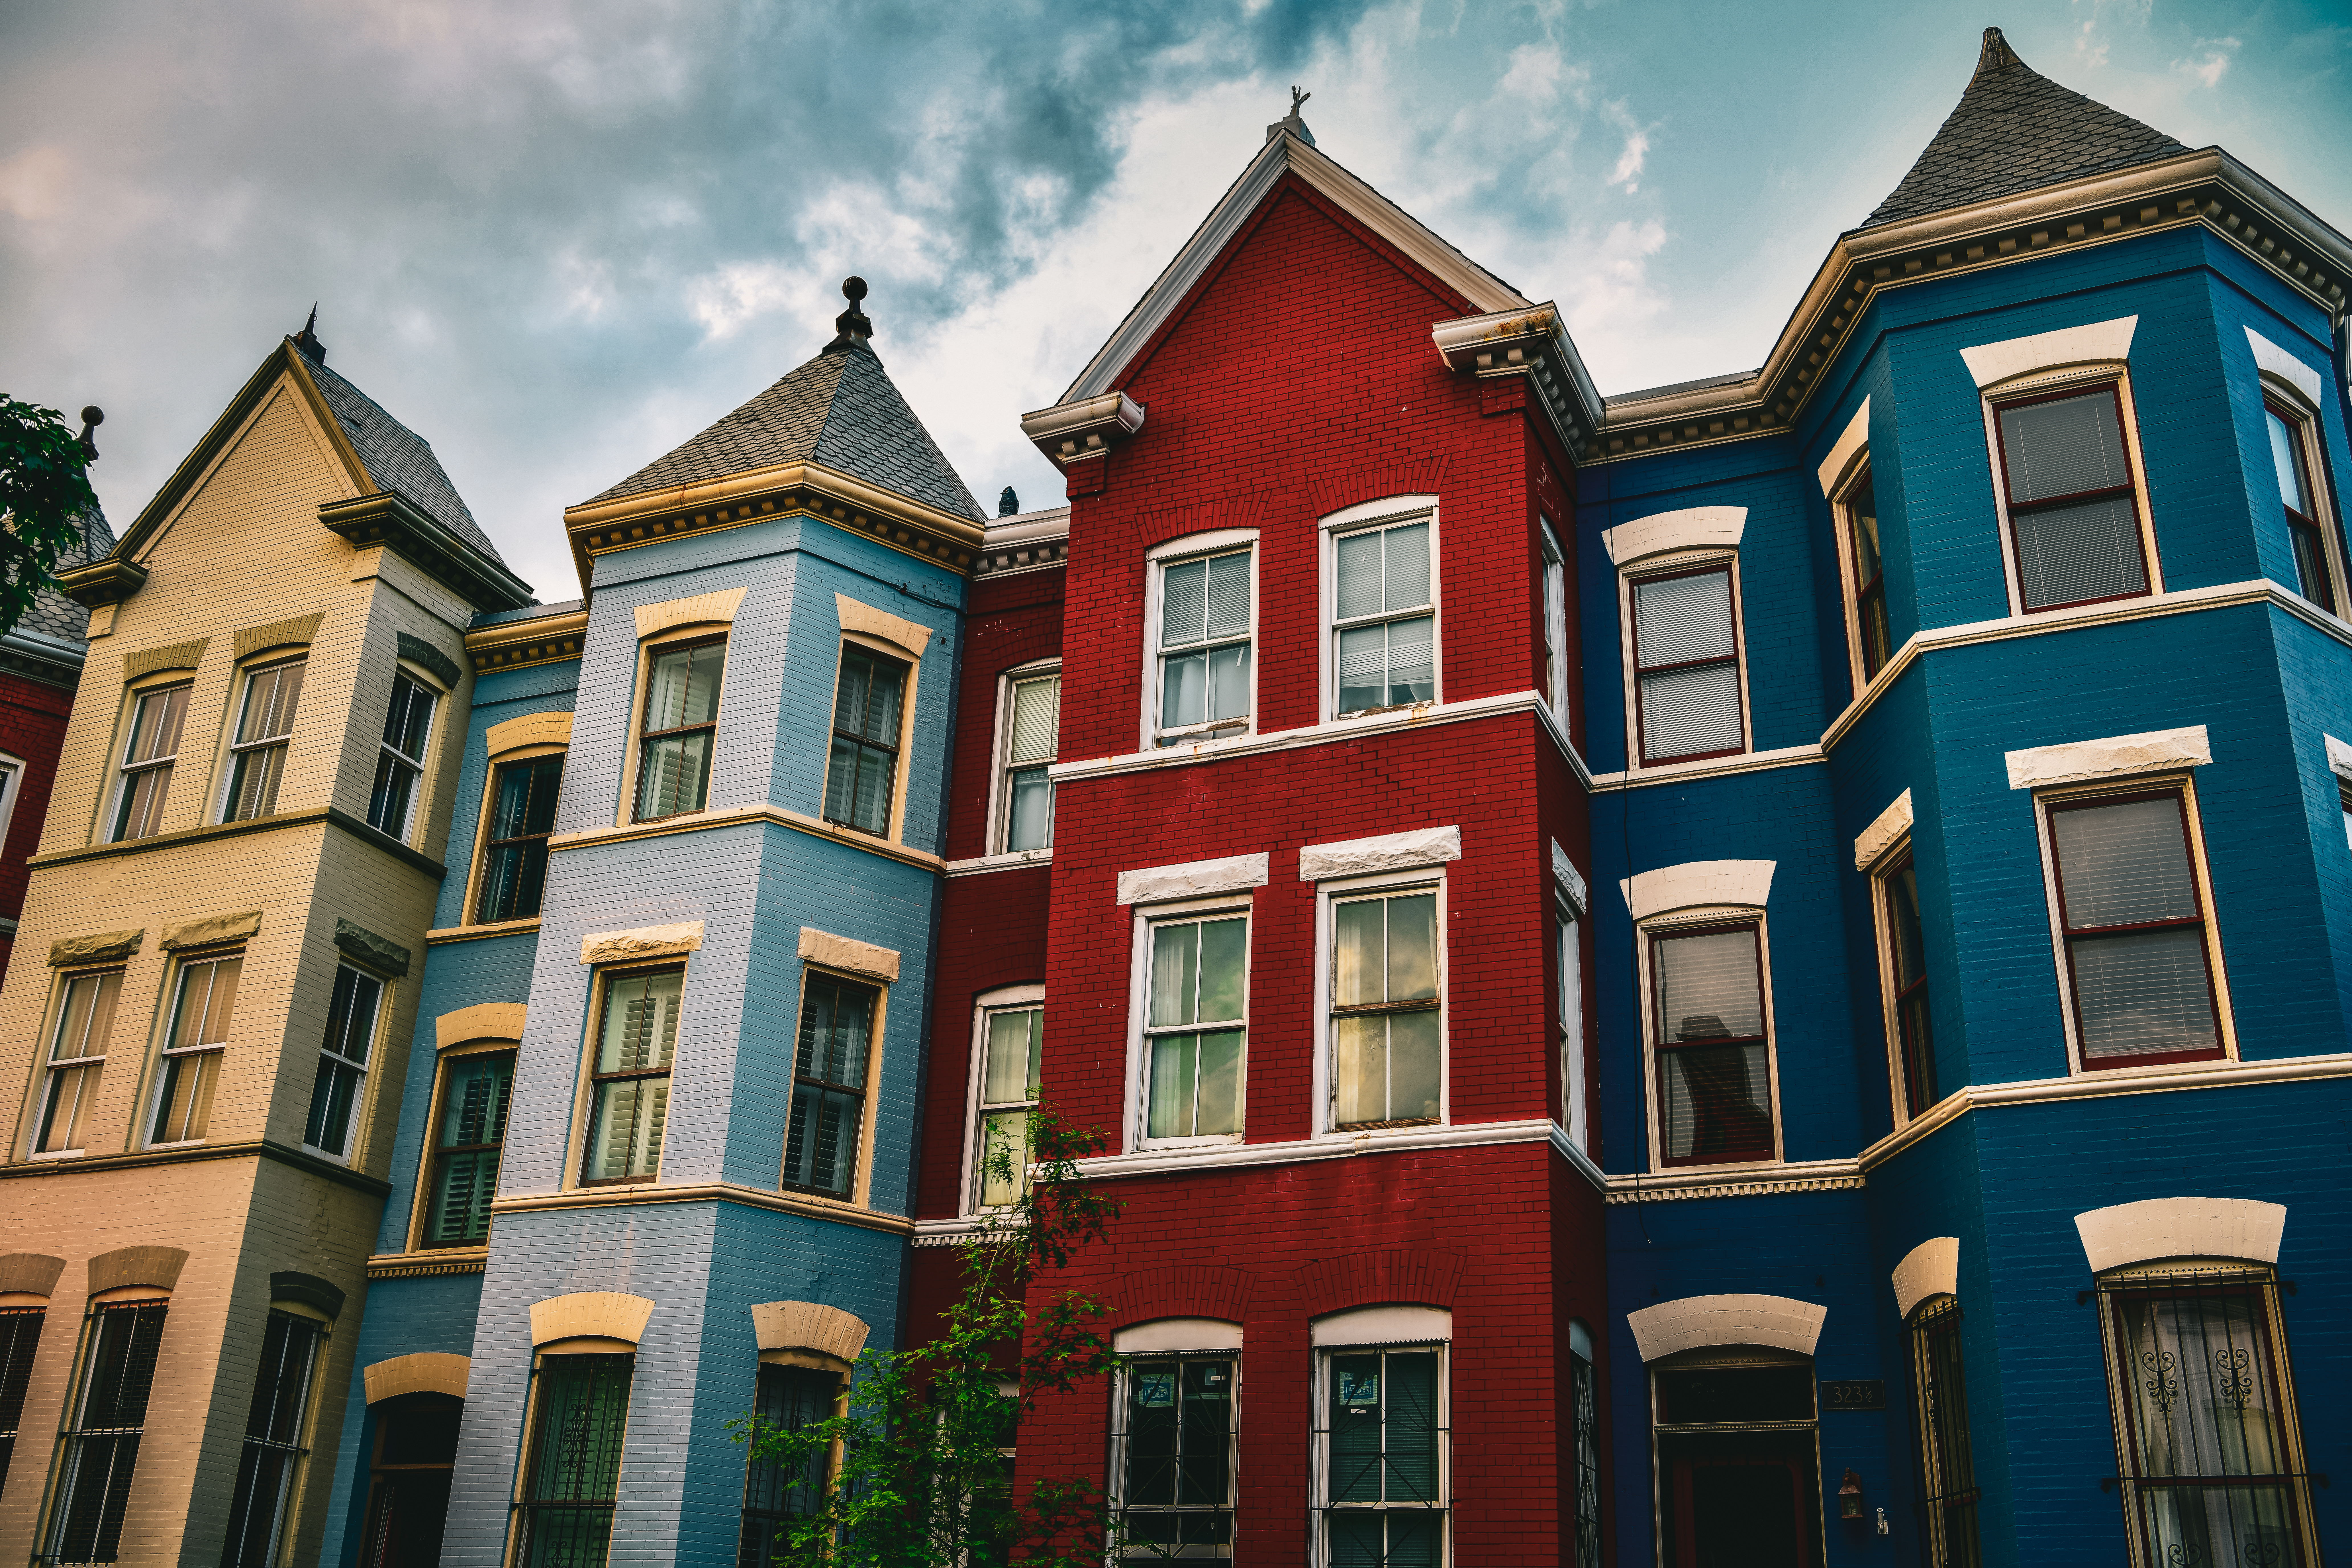 Four rowhouses in Washington, D.C. The first is beige, the second is light blue, the third is red, and the fourth is dark blue.